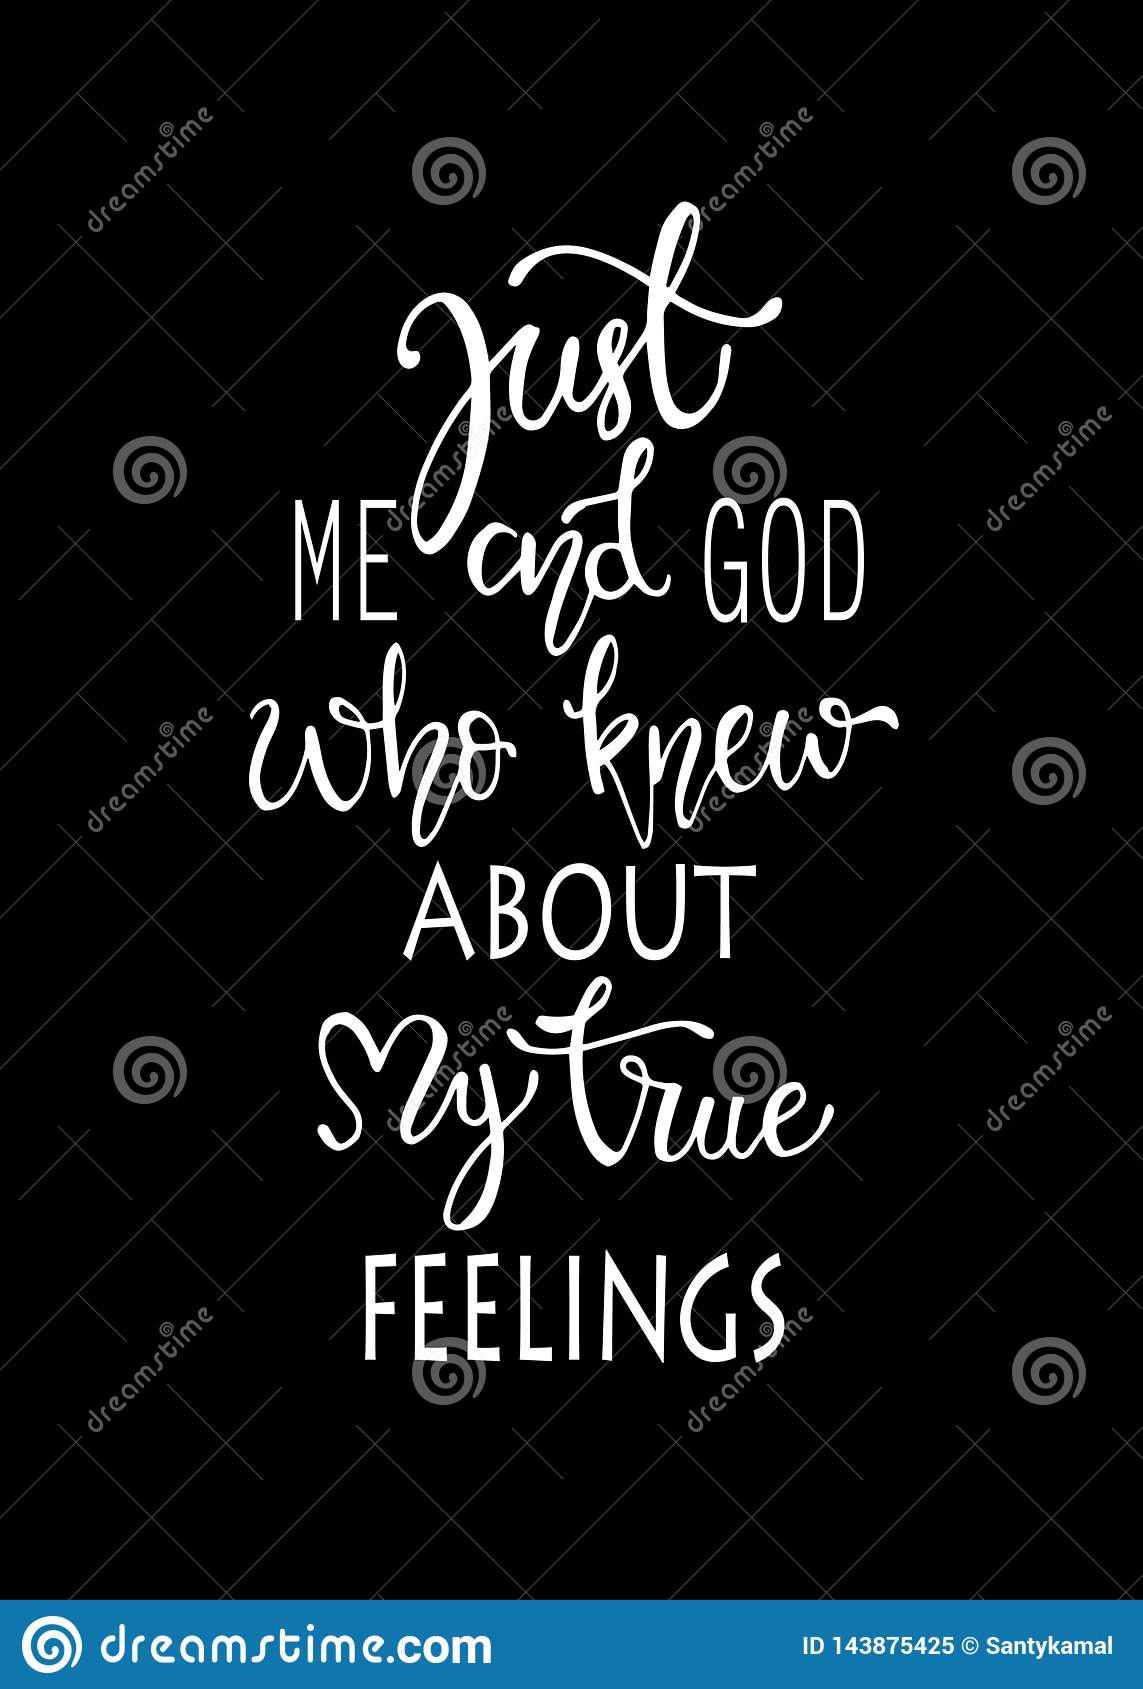 Just me and god who knew about my true fellings, hand drawn typography poster. T shirt hand lettered calligraphic design.